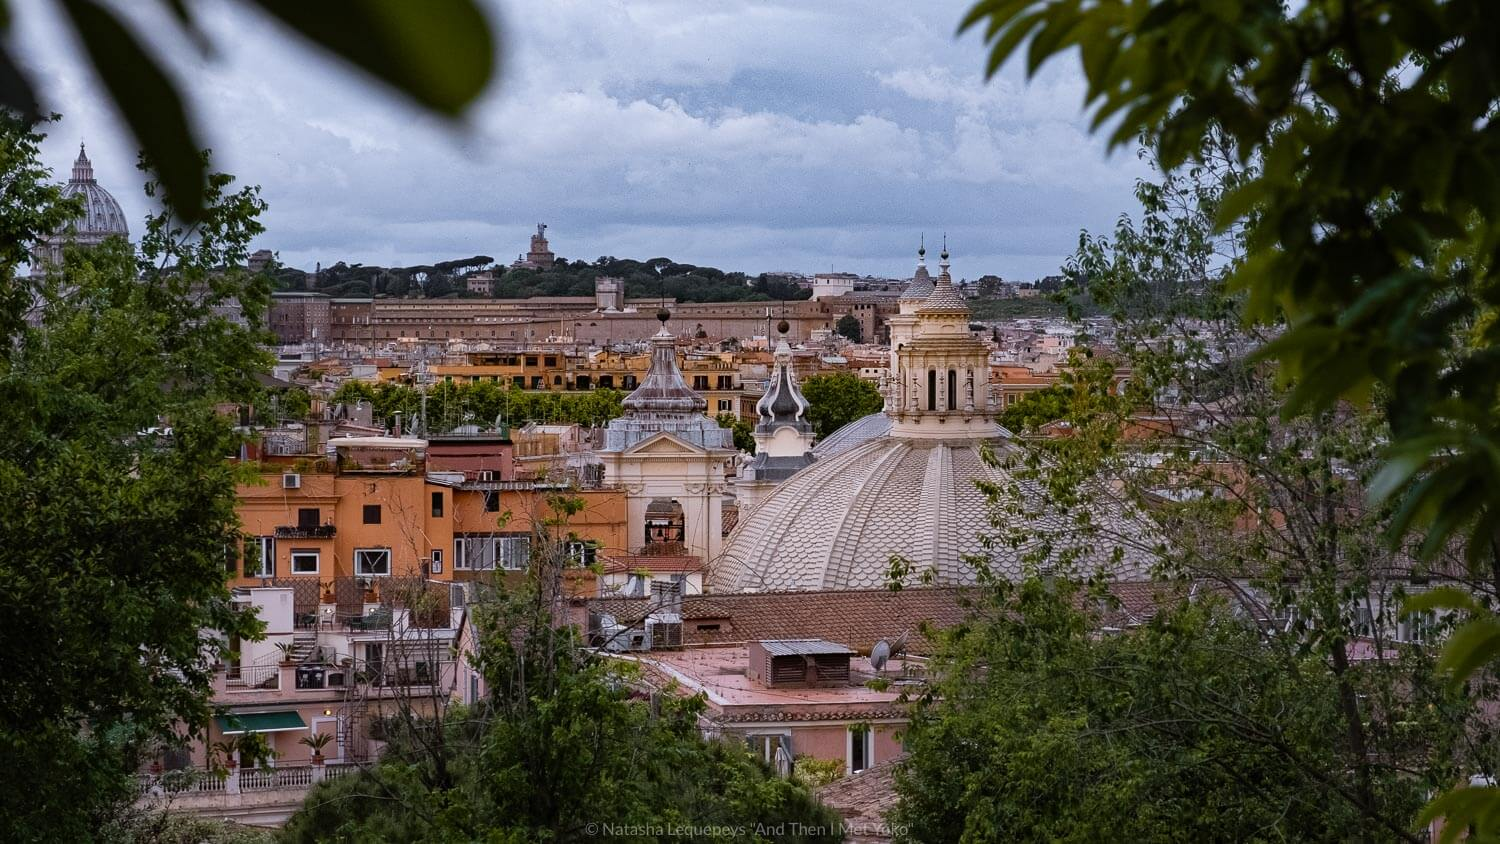 """Views of the city from the Borghese Park in Rome, Italy. Travel photography and guide by © Natasha Lequepeys for """"And Then I Met Yoko"""". #rome #italy #travelblog #travelphotography"""